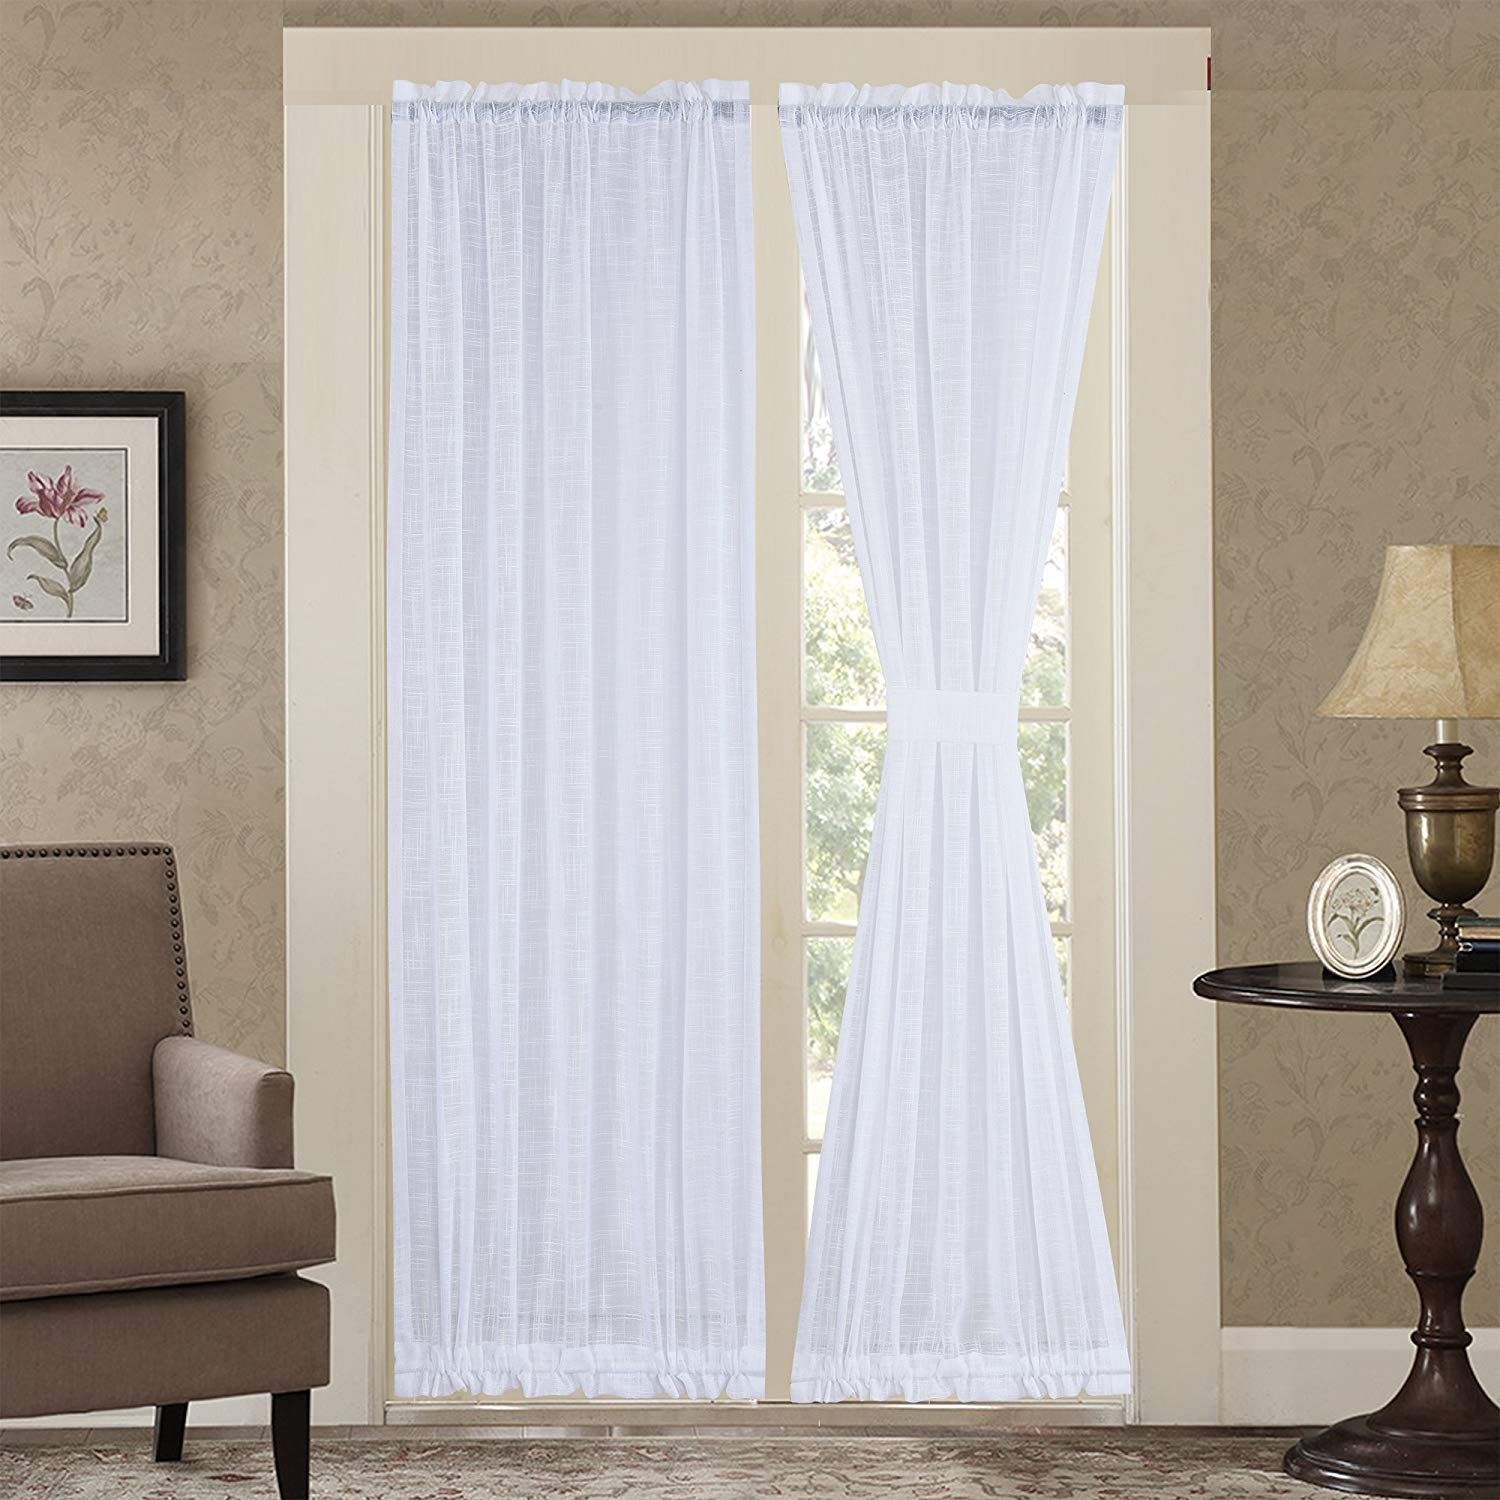 Curtains For Sale At Walmart Cheap Door Curtains Walmart Find Door Curtains Walmart Deals On